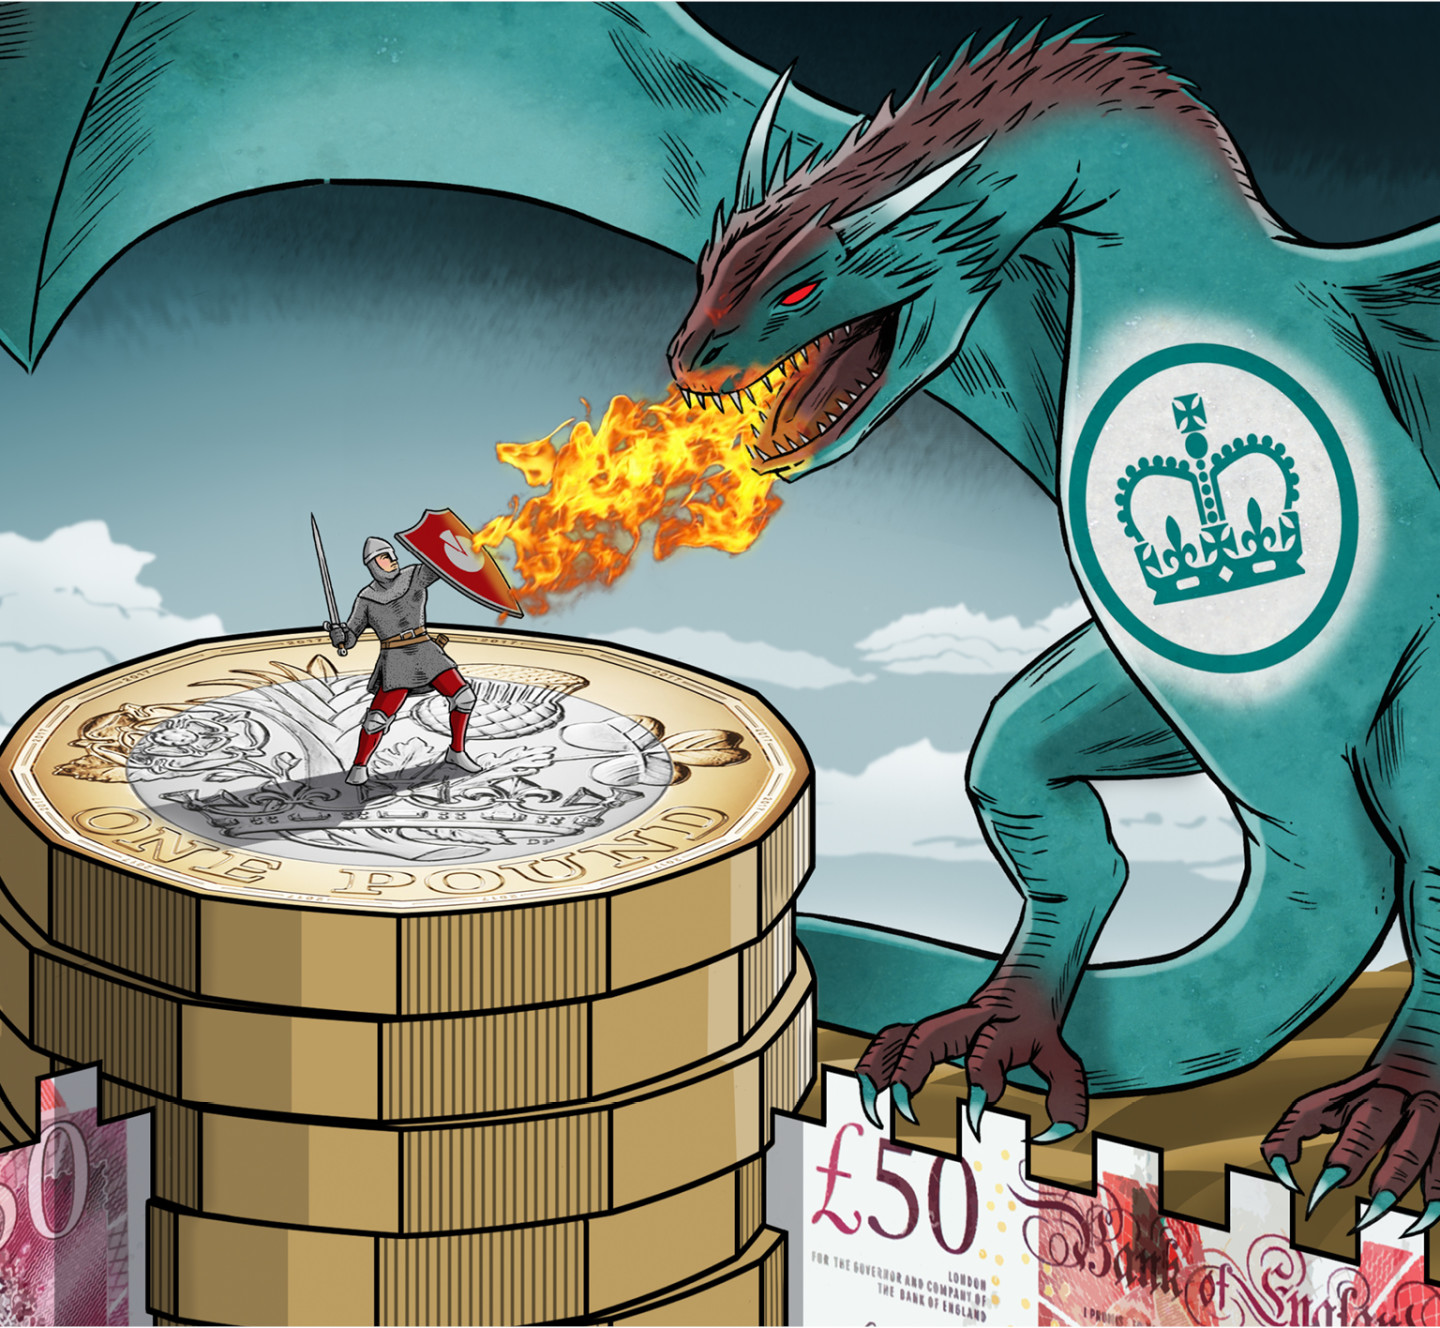 Ten ways to safeguard your savings income | Financial Times